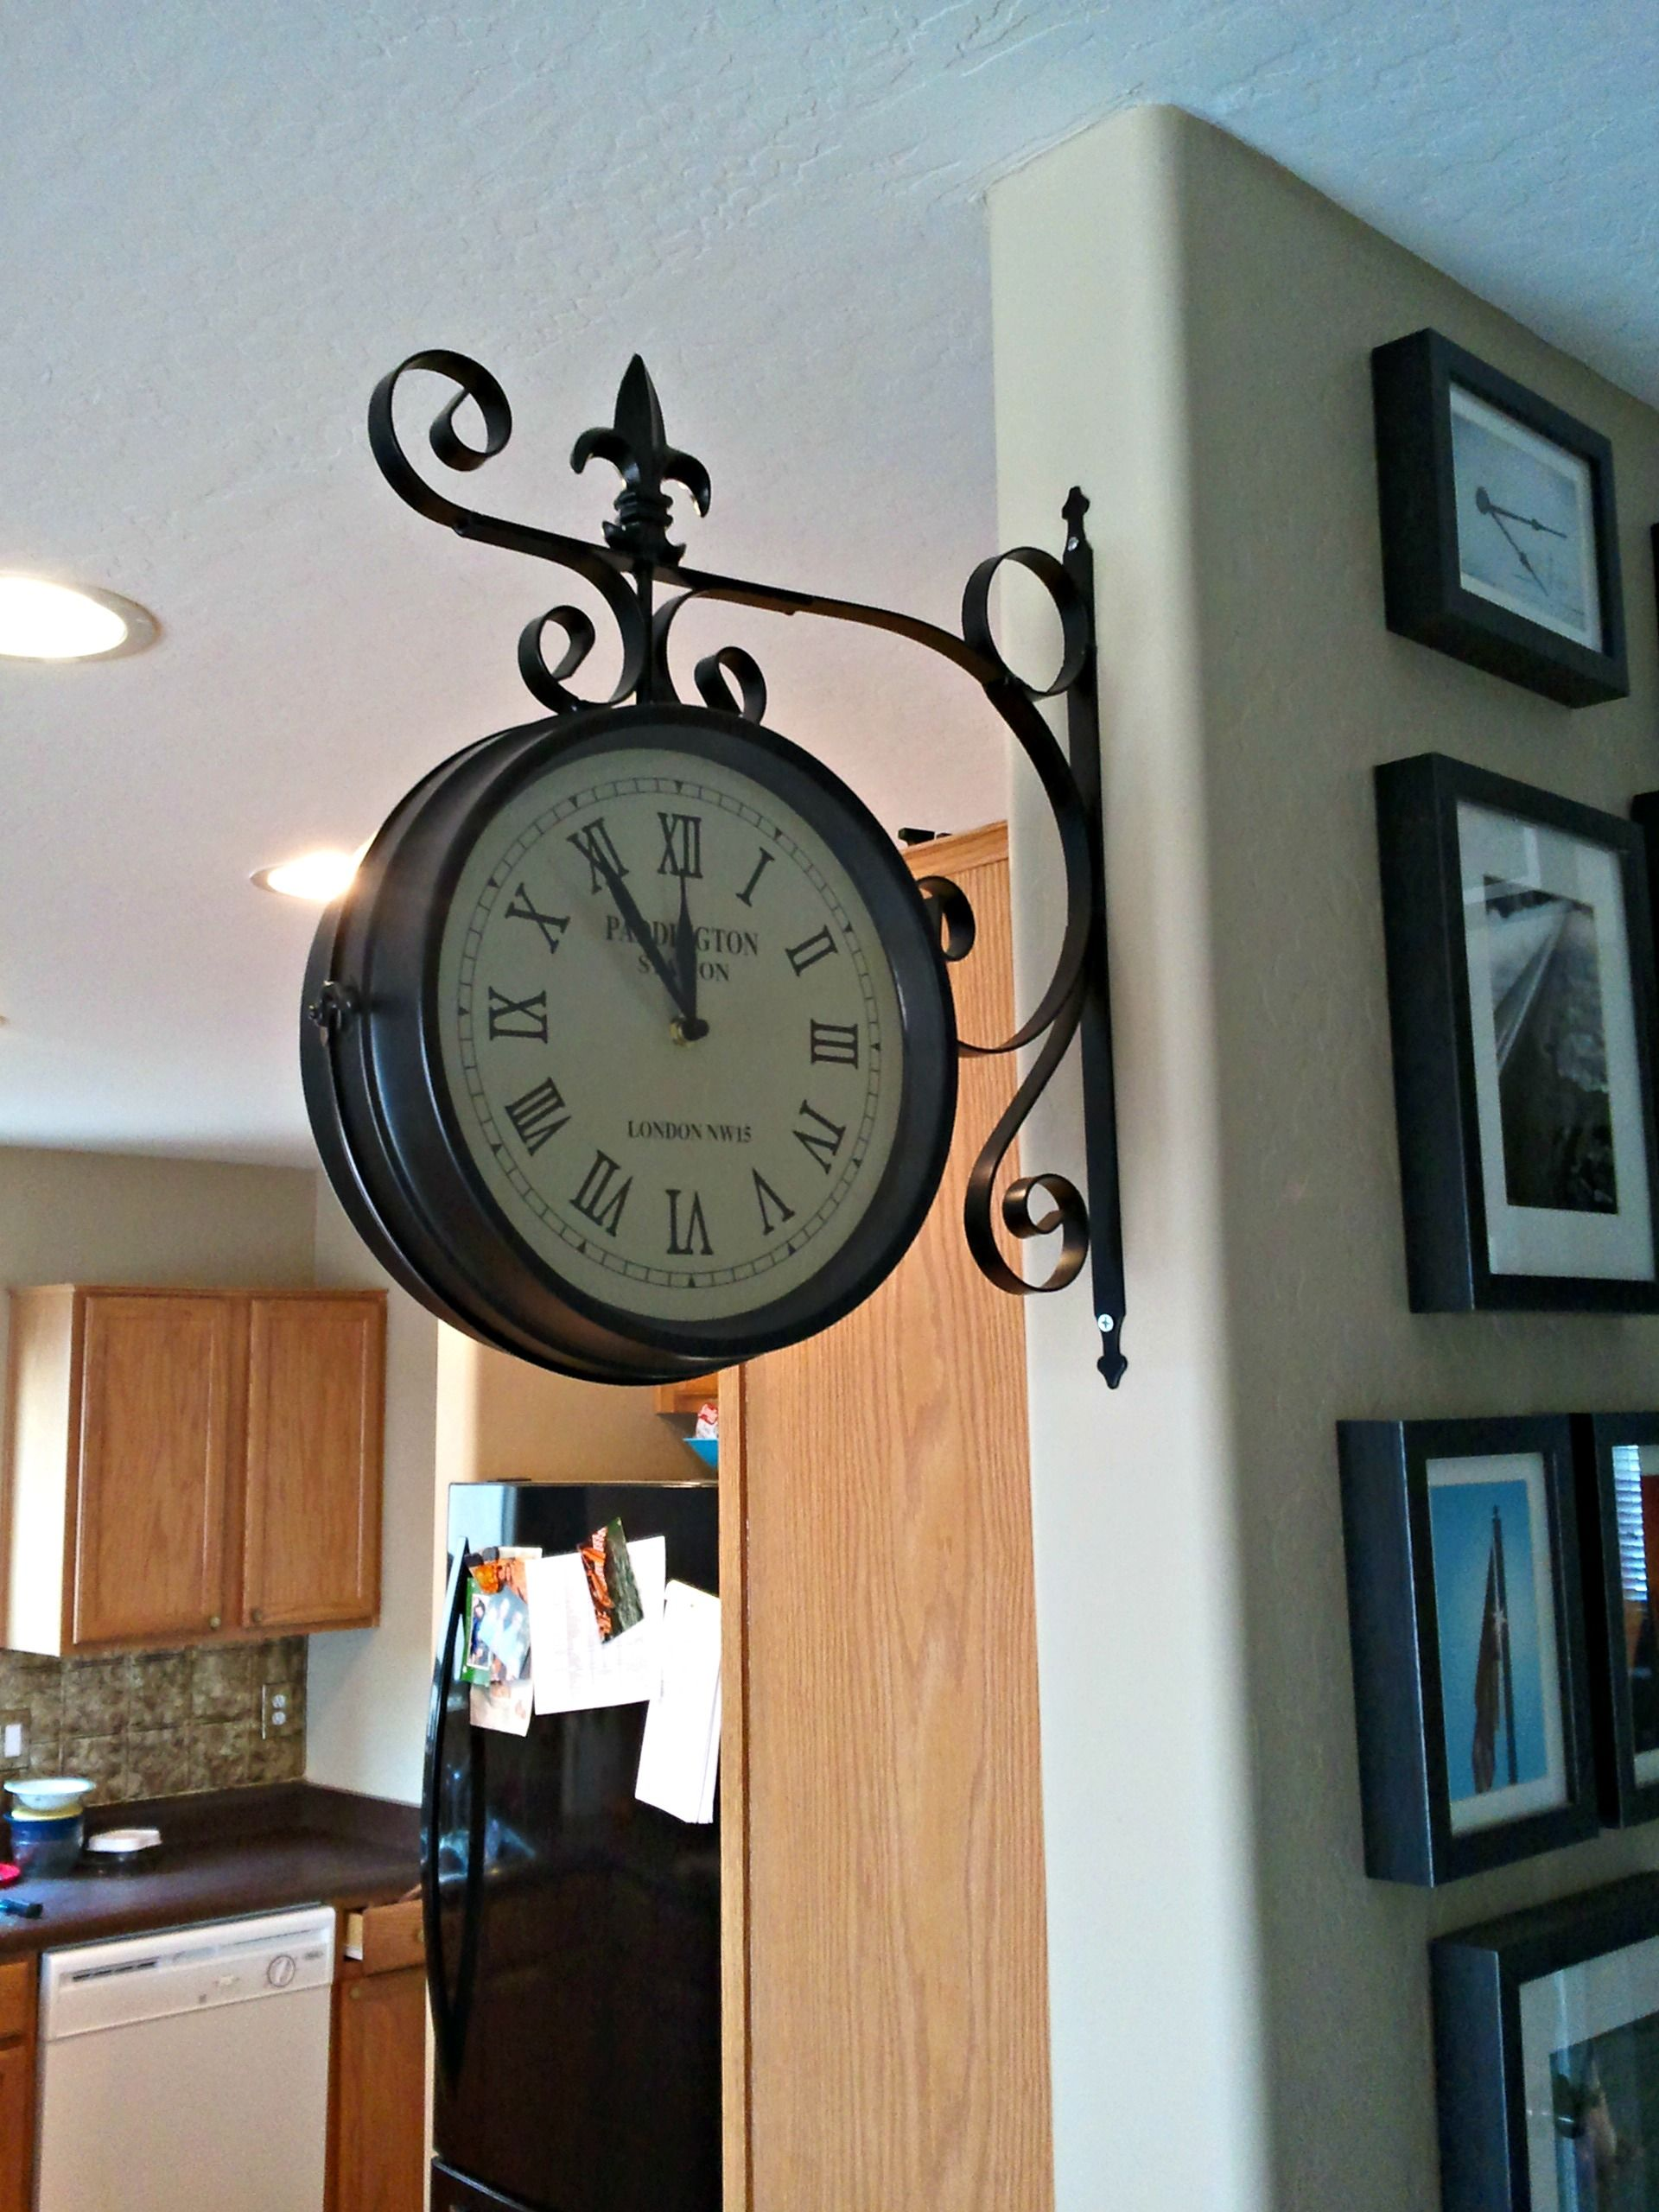 Kitchen Railway Station Clock Diy KitchenKitchen IdeasBedroom DesignsInterior